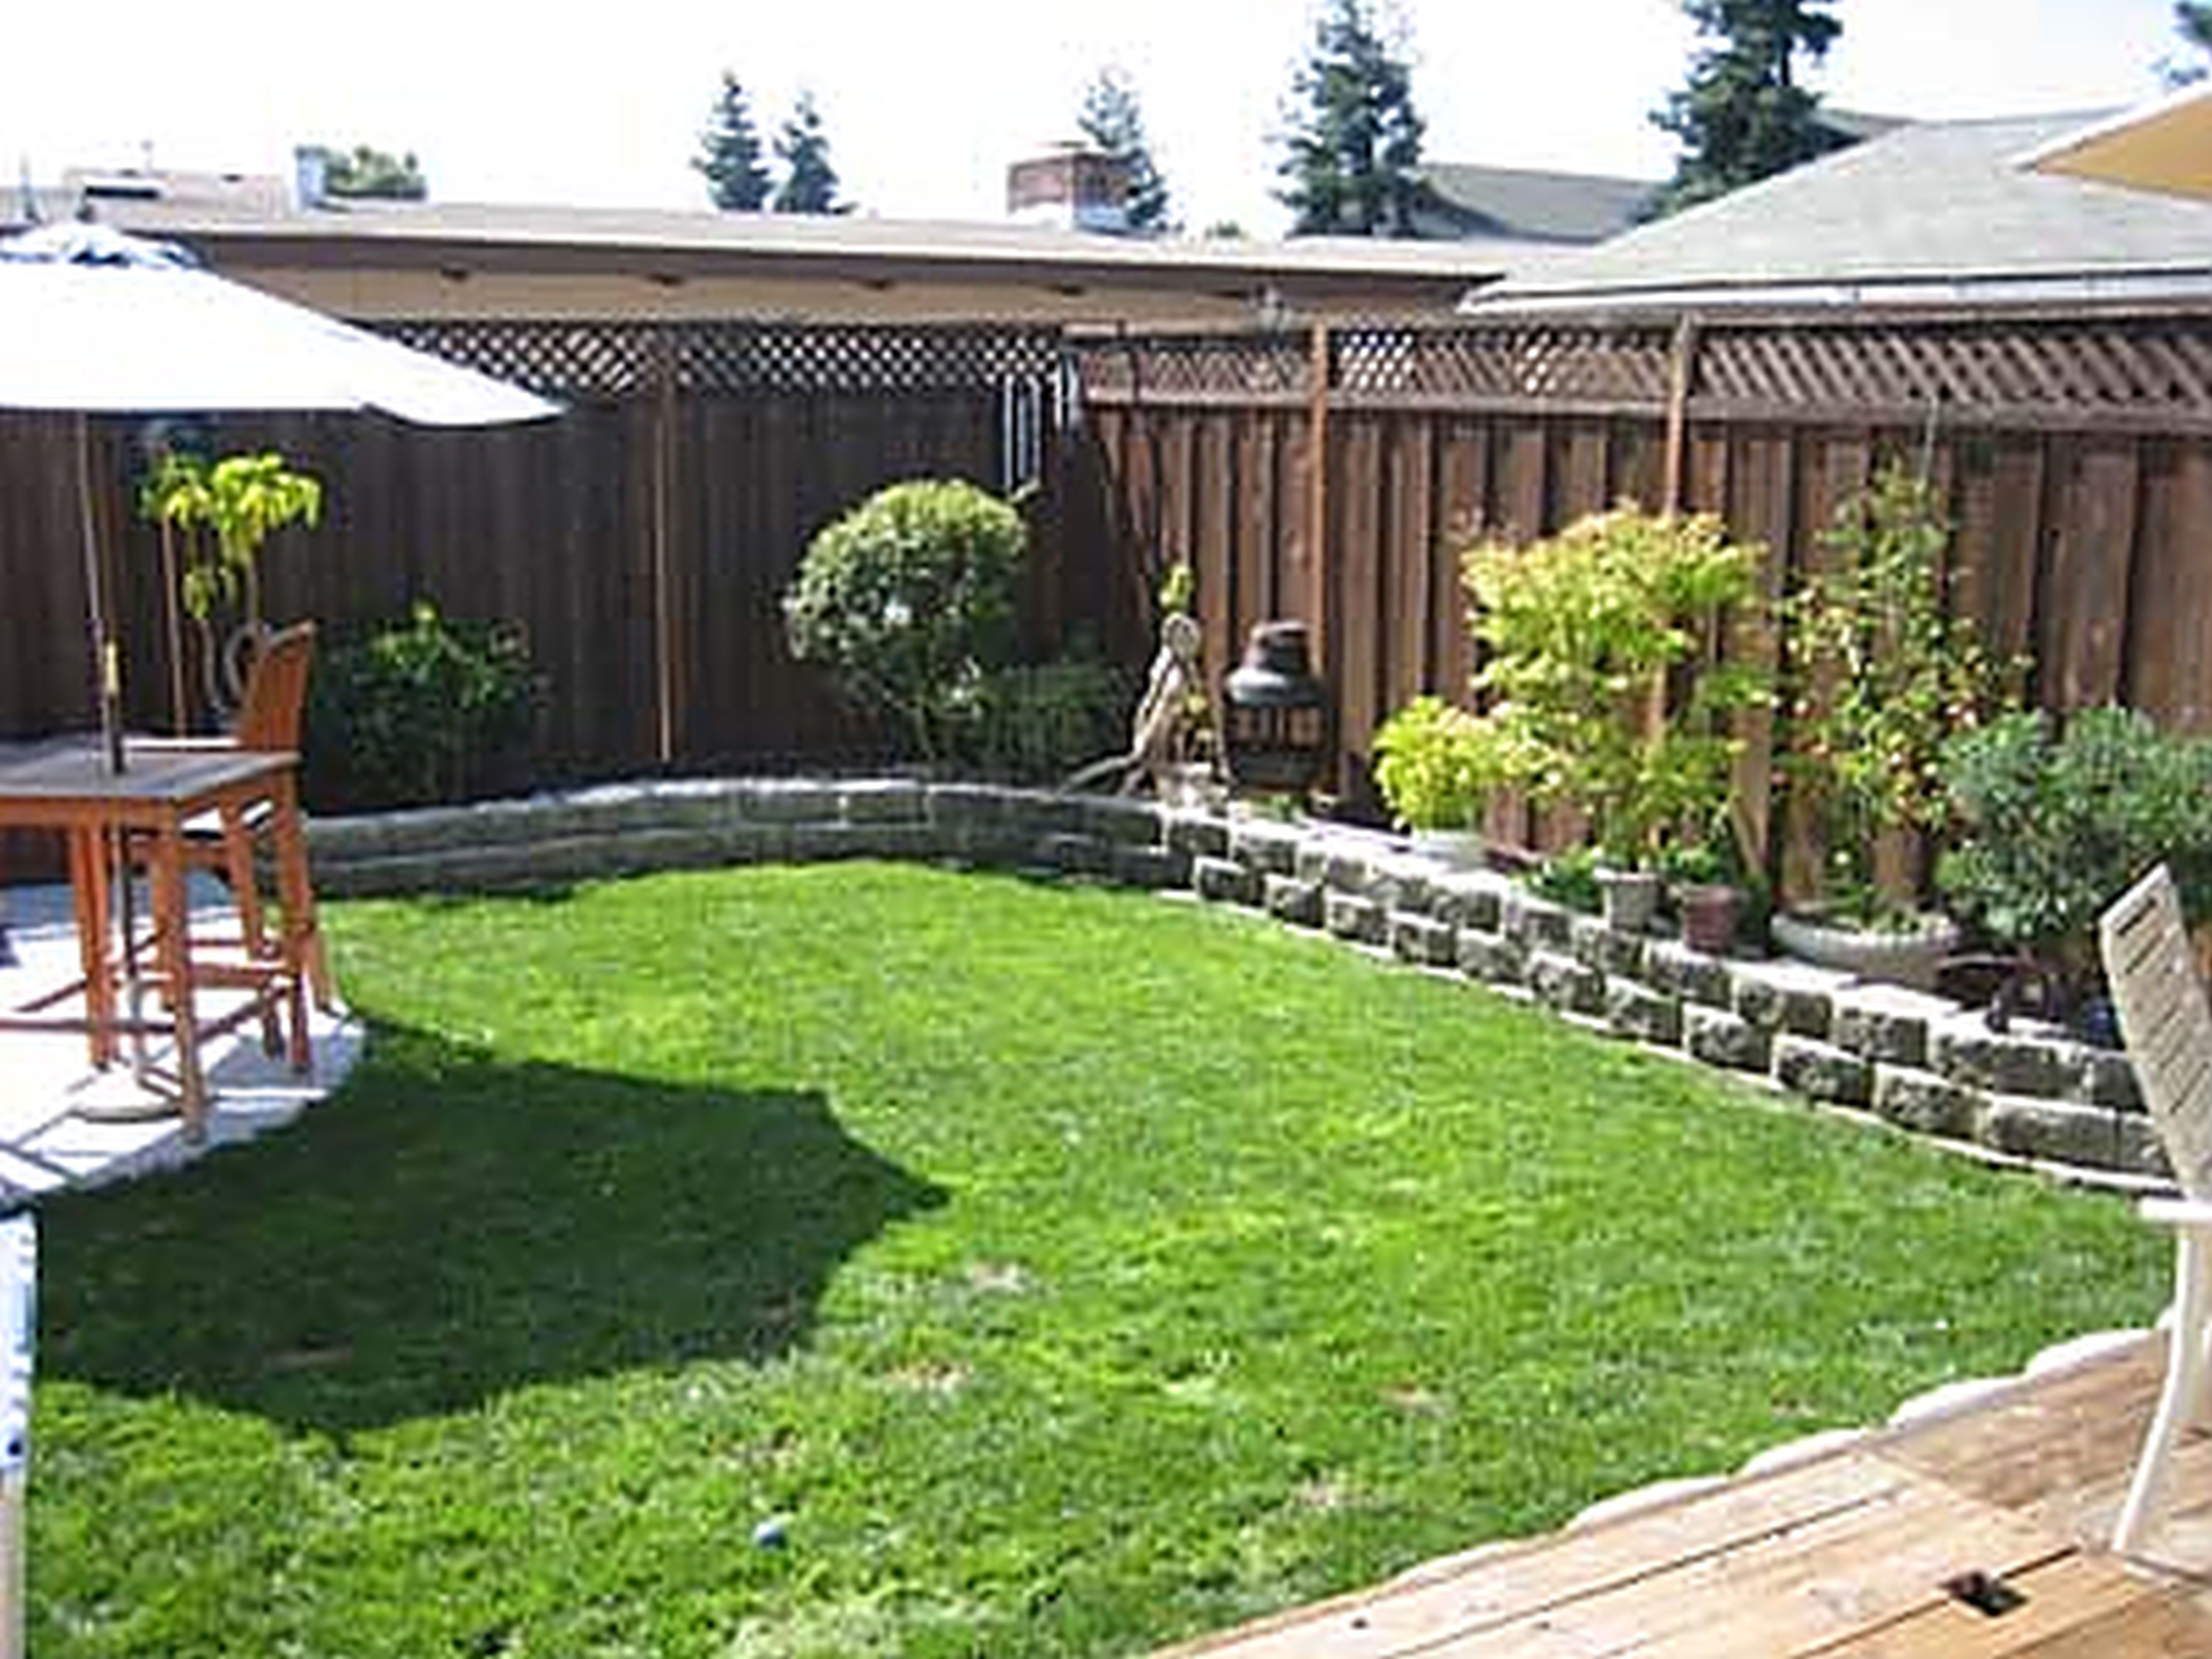 Yard Landscaping Ideas On A Budget Small Backyard inside 13 Clever Ideas How to Improve Landscape Small Backyard